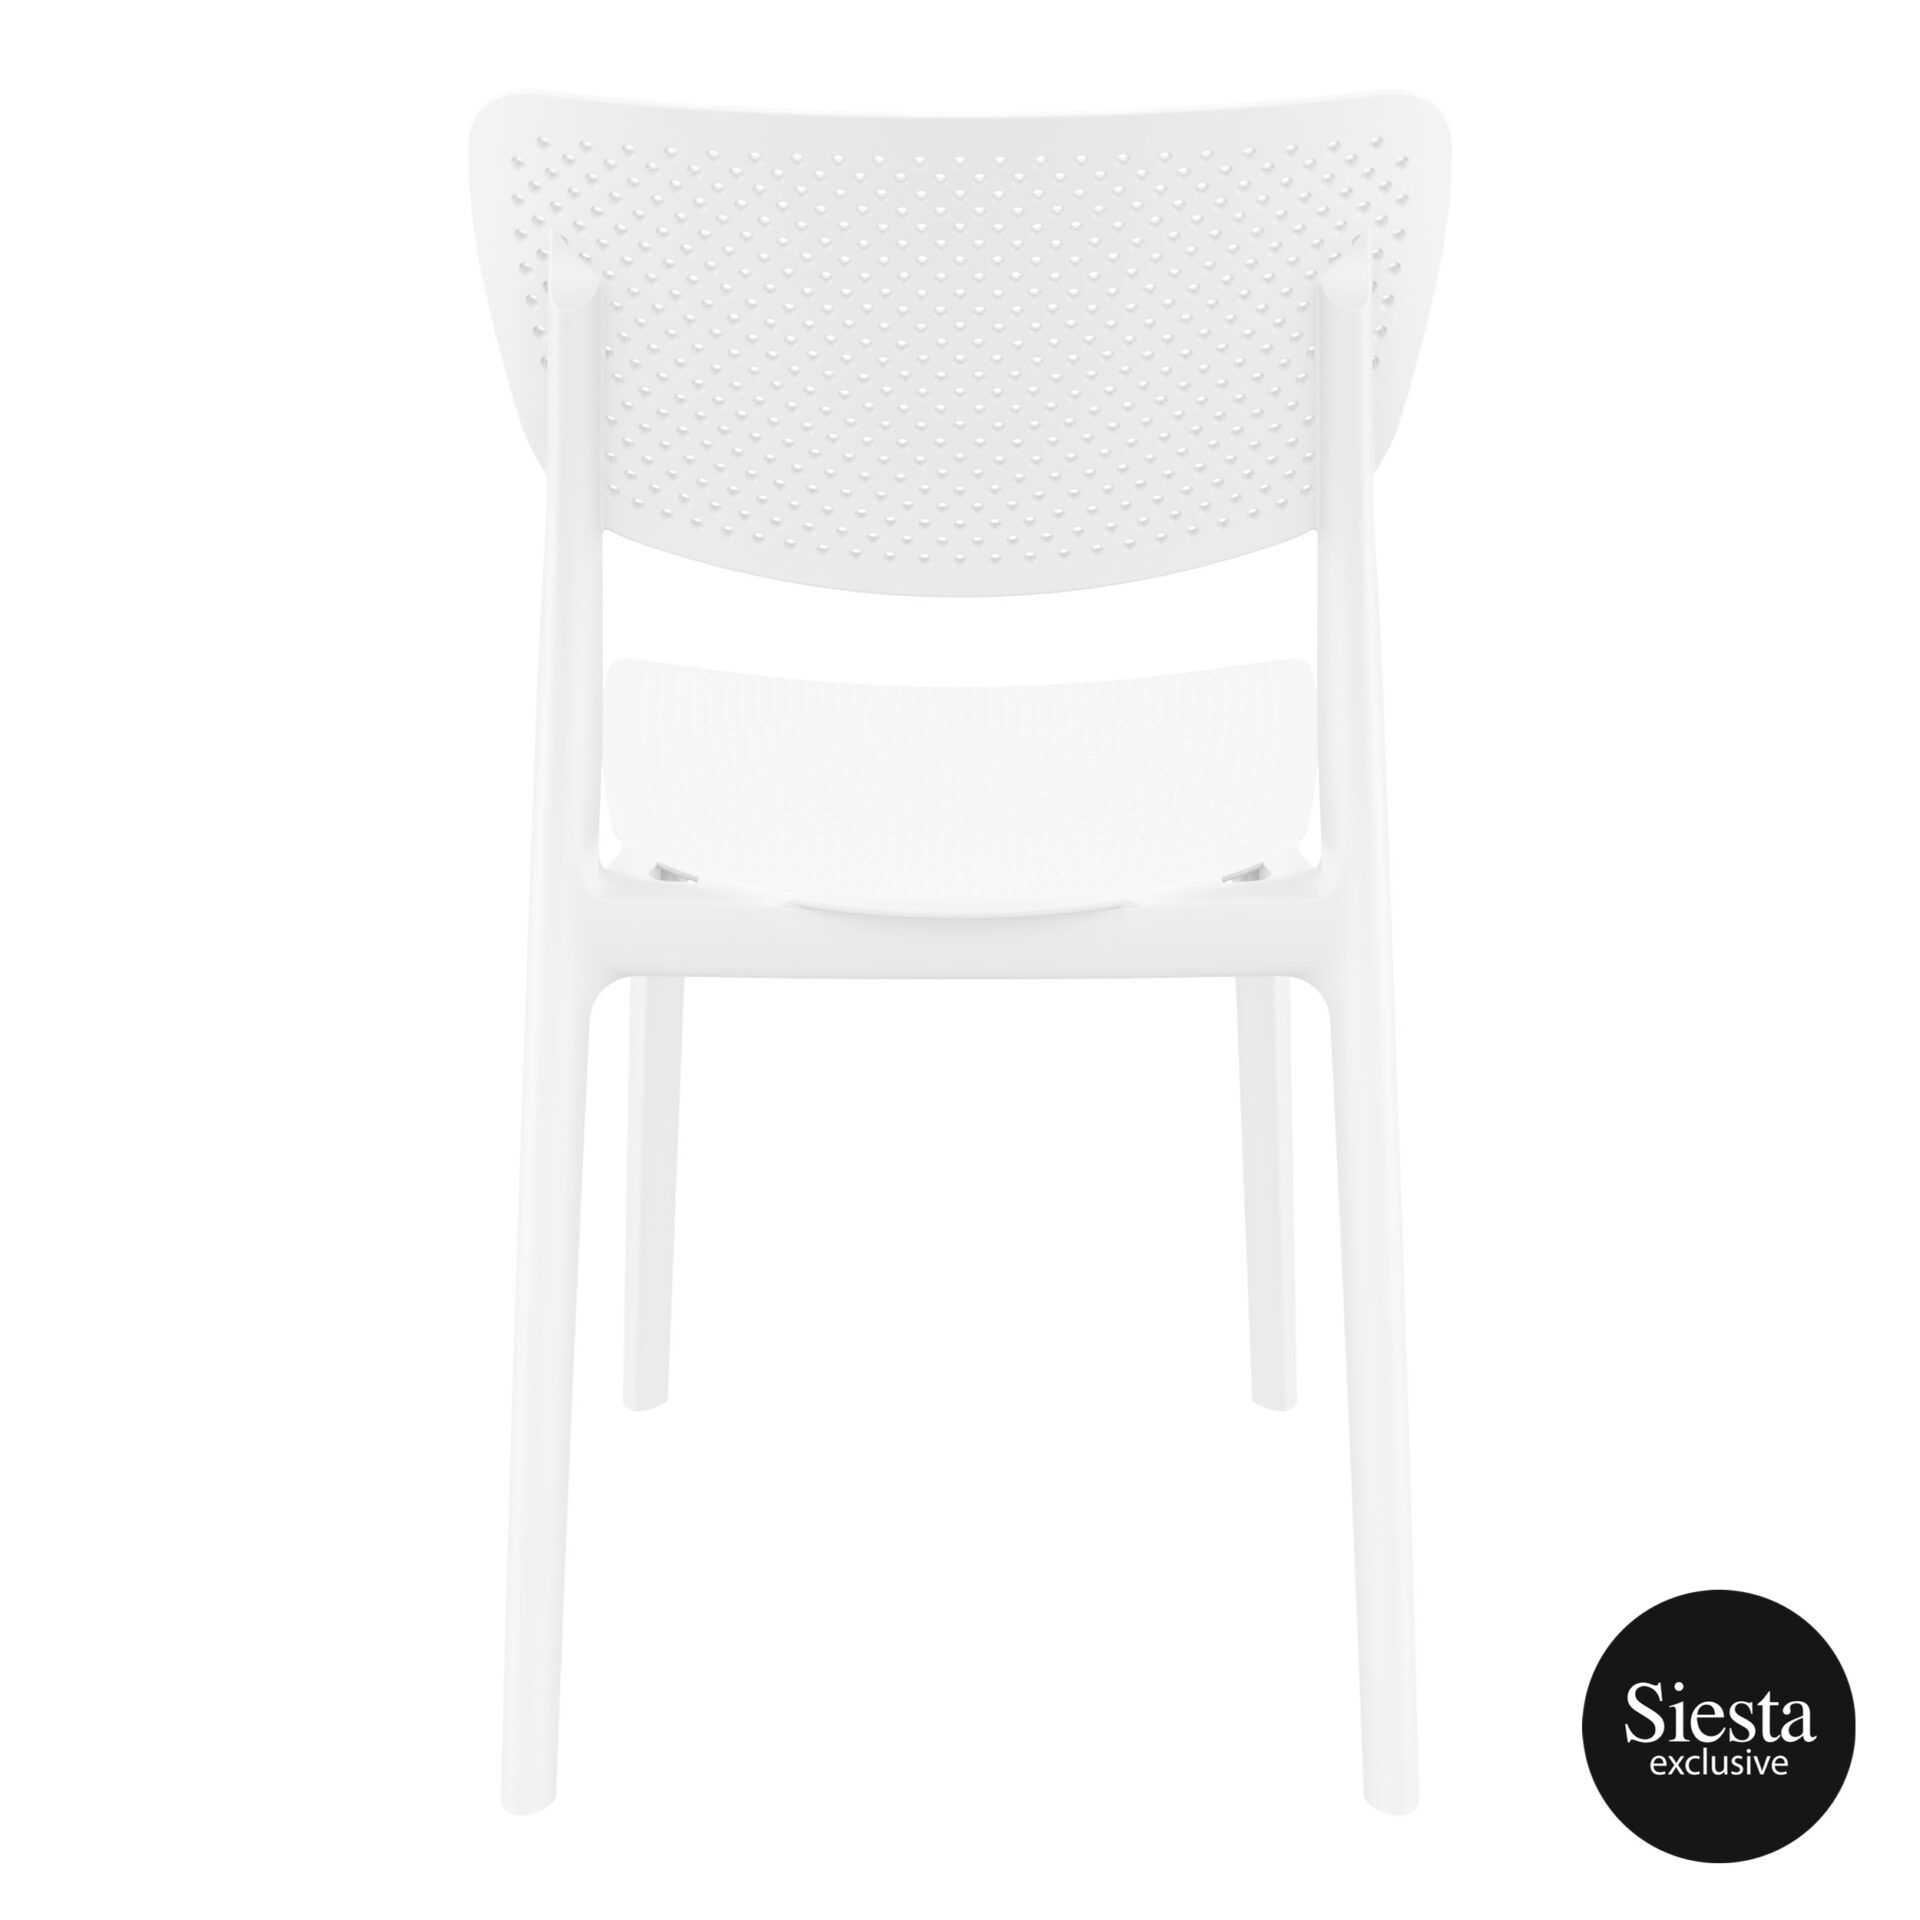 polypropylene hospitality seating lucy chair white back 1